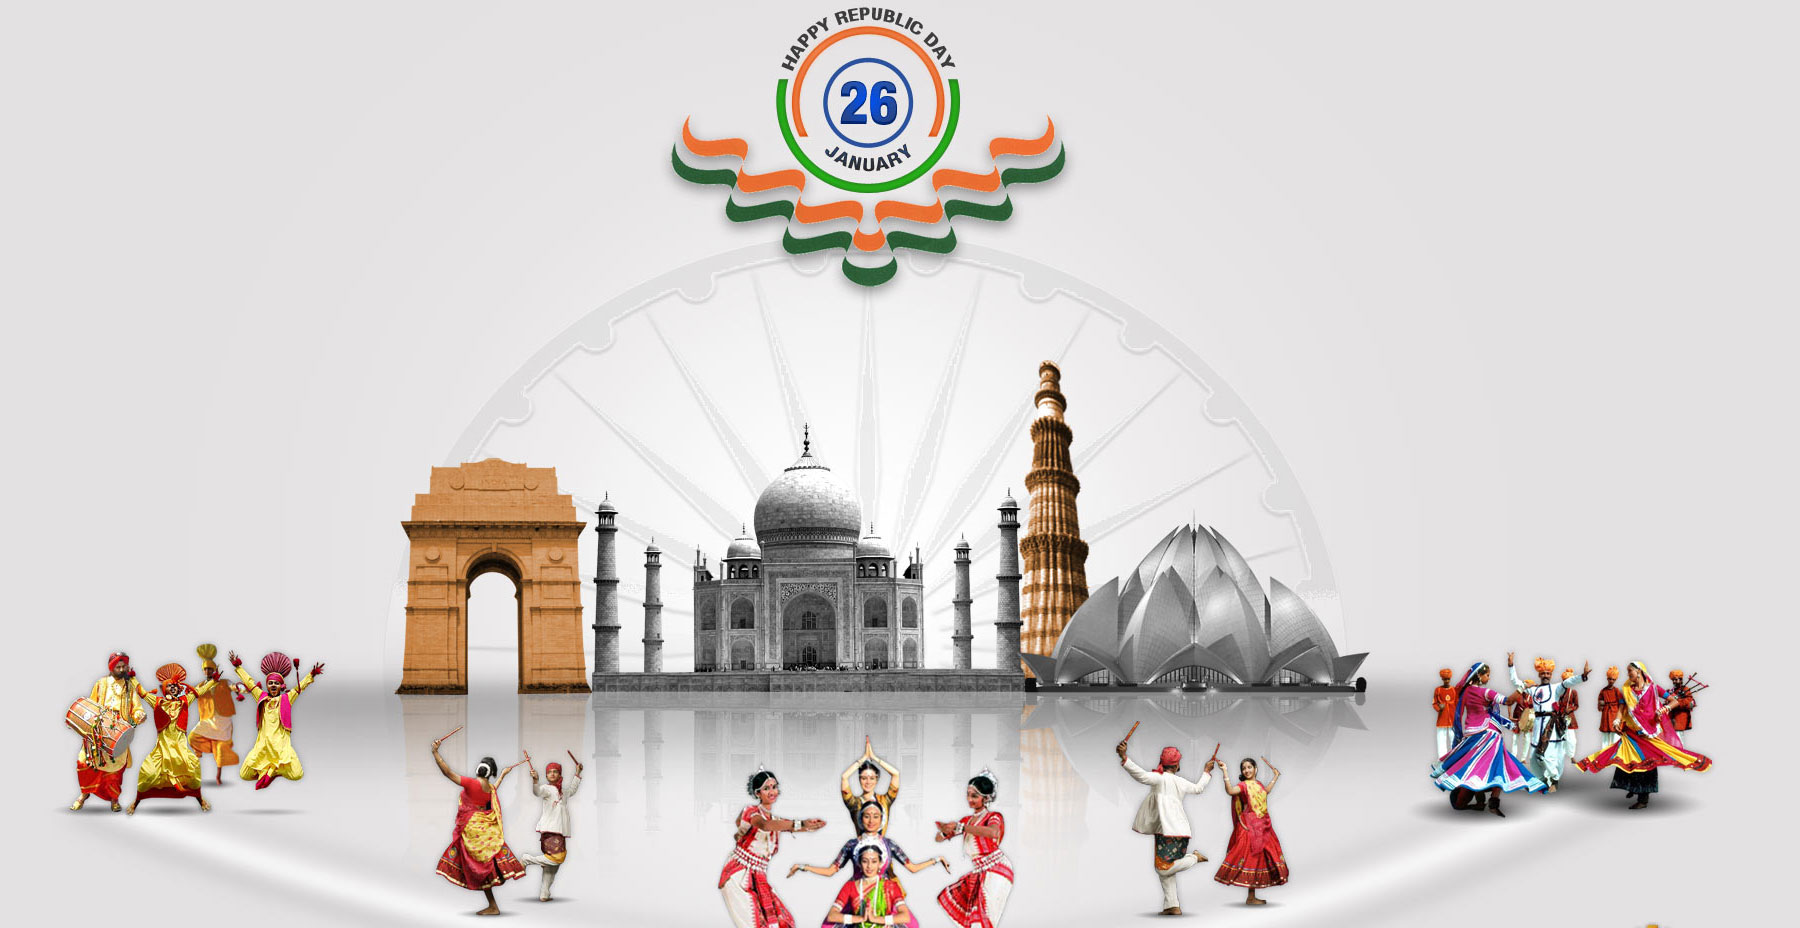 an introduction to the history of the republic of india India facts, pictures, and information about the culture sign in join see badges logout republic of india, bharat form of government: federal republic capital: new delhi history india's earliest known civilization arose about 5,000 years ago on the indus river in what is now pakistan.